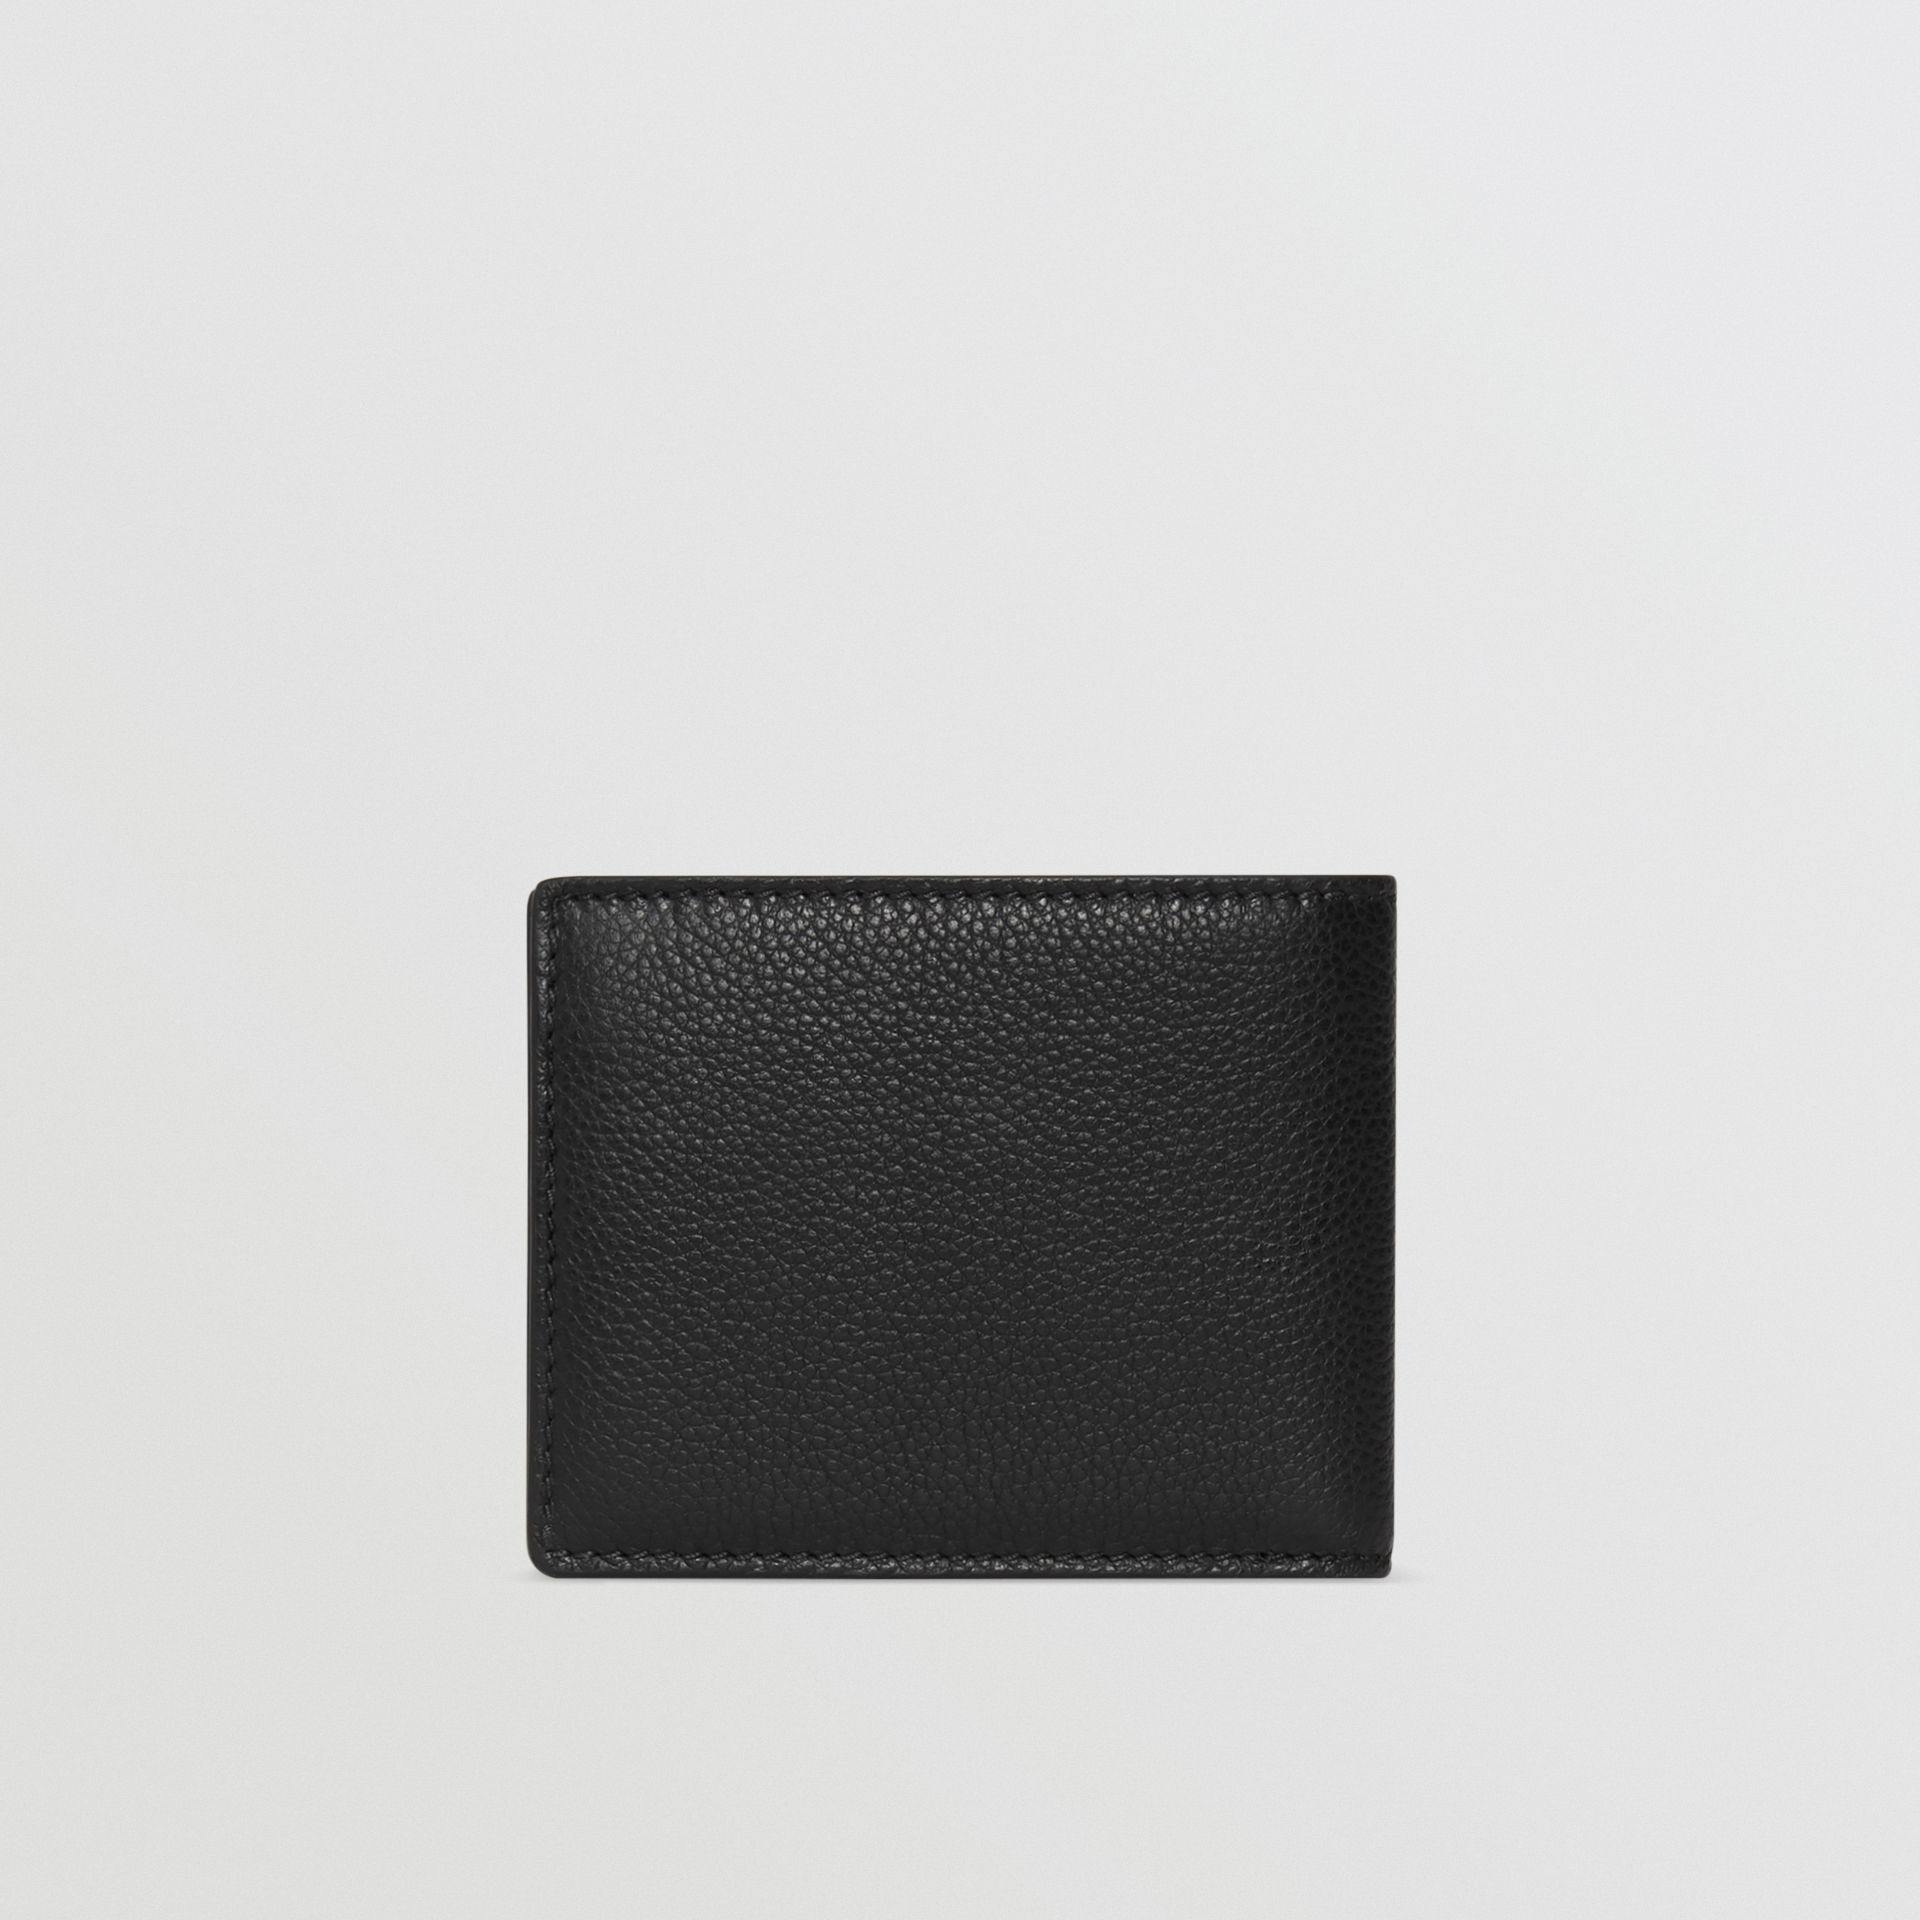 Grainy Leather Bifold Wallet in Black - Men | Burberry - gallery image 5